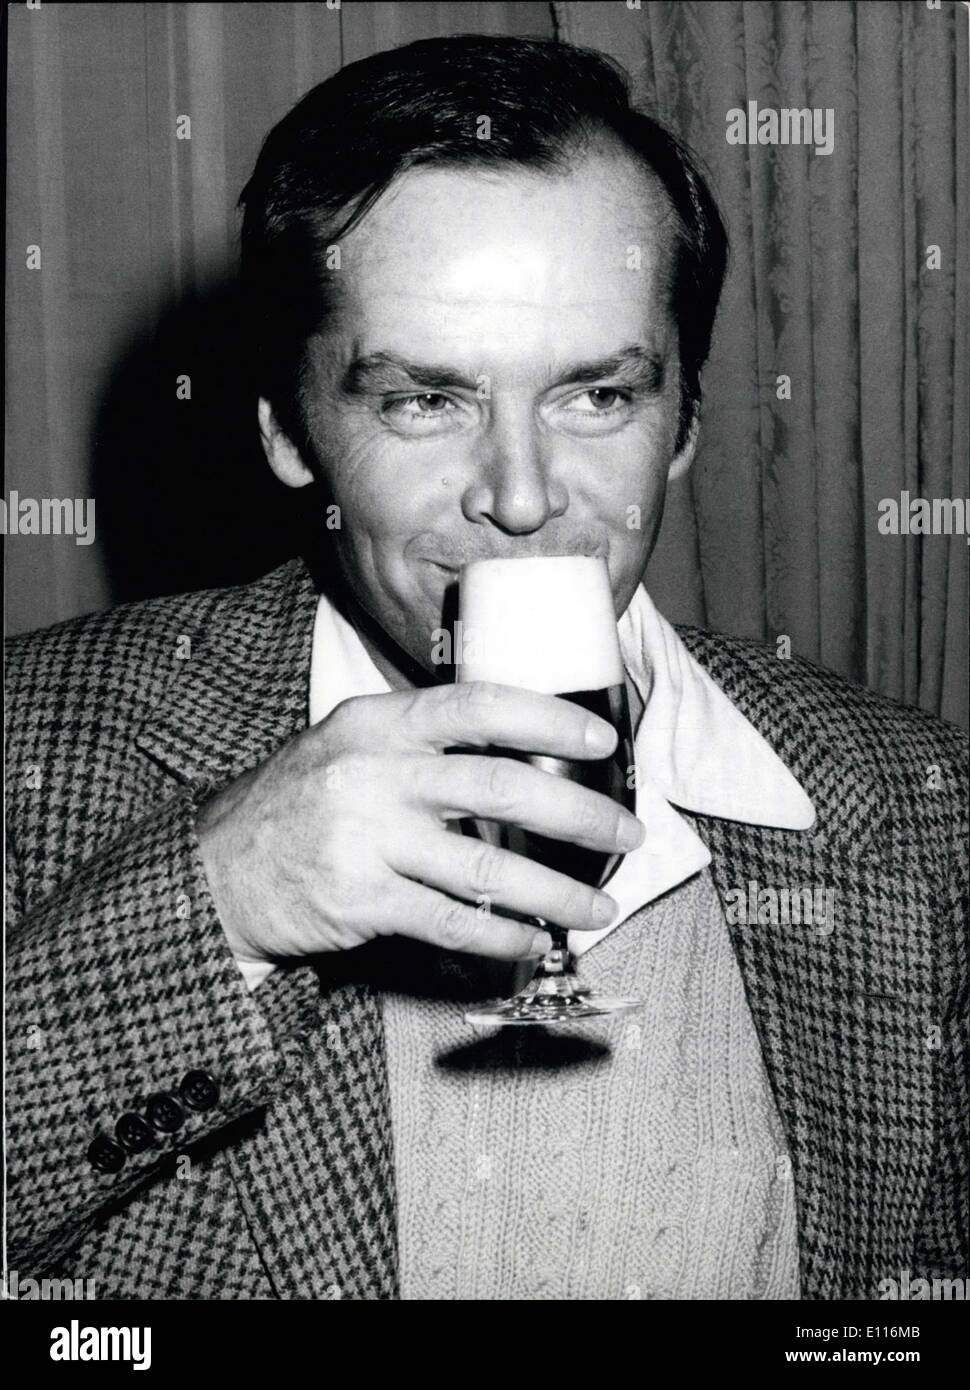 Feb. 26, 1976 - Jack Nicholson presents his latest film ''One Flew over the Cuckoo's Nest'' in the West Germany: US actor Jack Nicholson came to Hamburgh in order to present his latest film ''One flew over the cuckoo's neat'' and took the opportunity to taste some of the famous German beer (picture). The renowned film star plays the main role in the film, which has already become 6 ''Golden Globes'' in the United States. He therefore has been nominated for an ''Oscar'', while the entire film, directed by Milos Forman and produced by Michael Douglas, has been nominated for nine ''Oscars'' - Stock Image